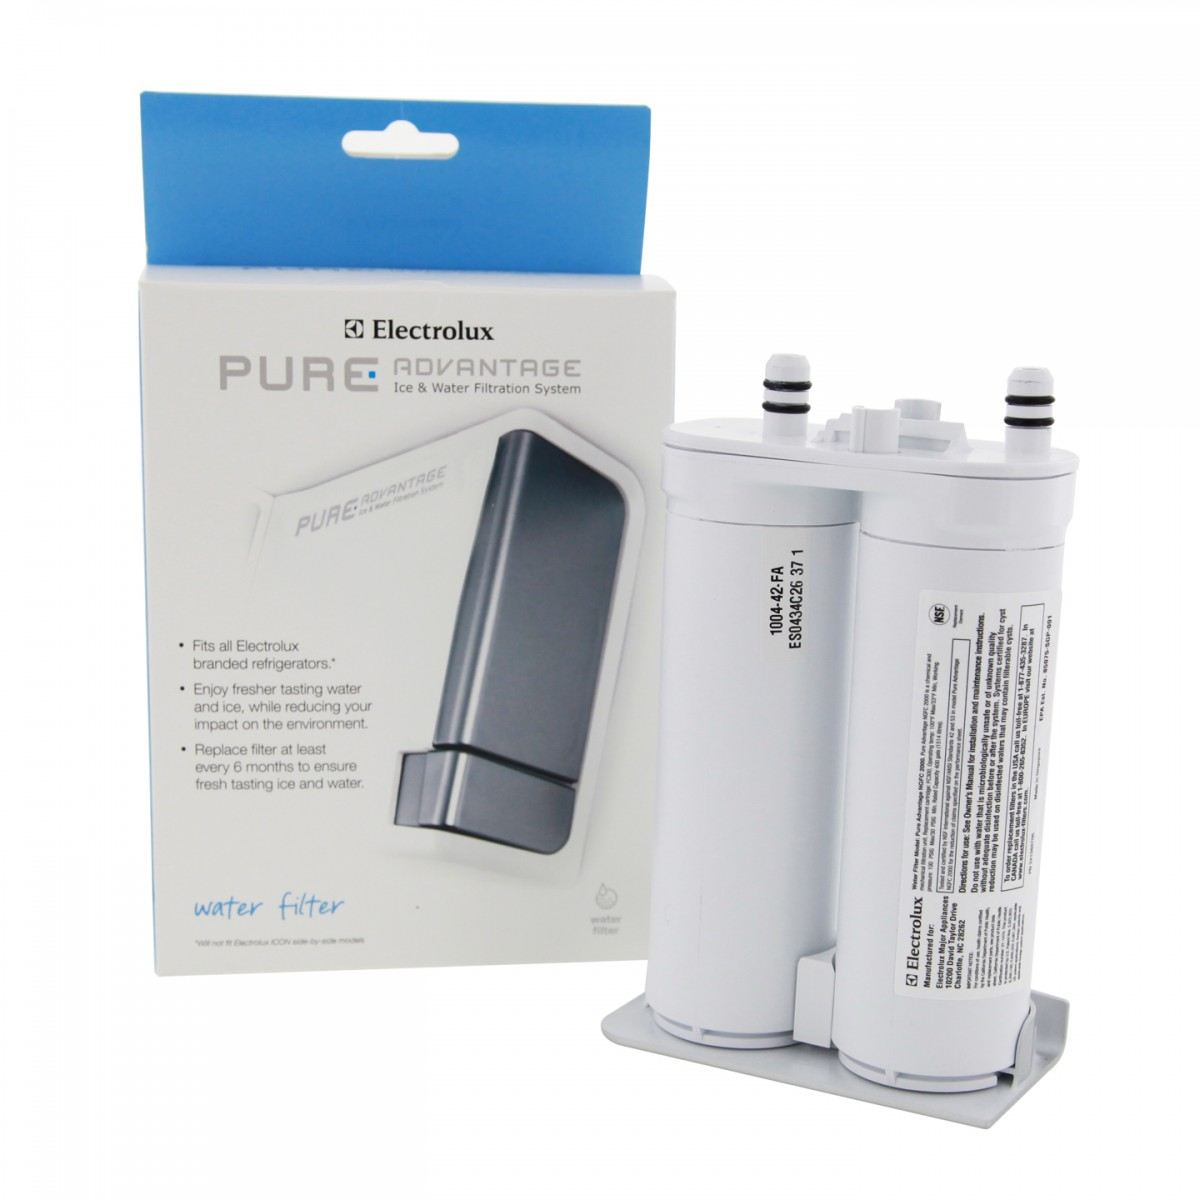 electrolux air filter. electrolux pure advantage ewf01 refrigerator water filter combo with eafcbf air (refrigerator t